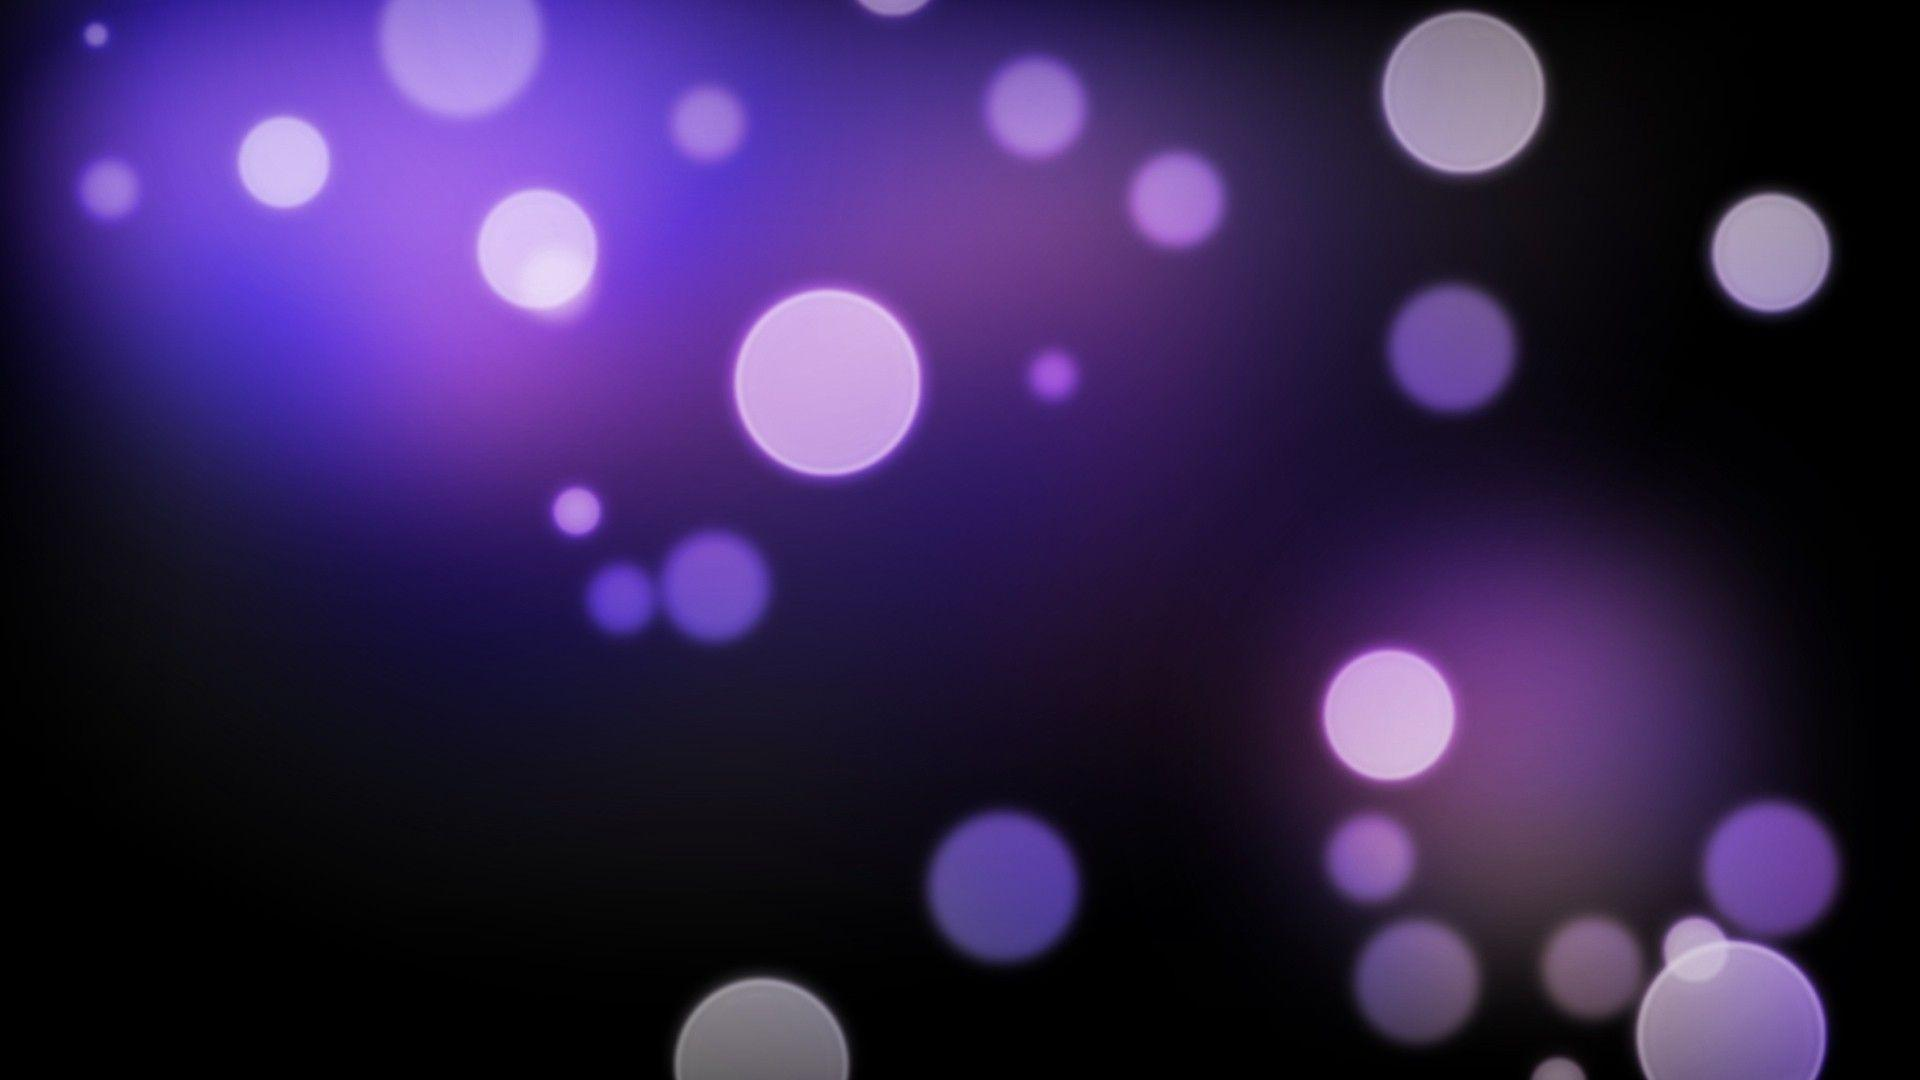 Dark Purple Background, wallpaper, Dark Purple Background hd ...